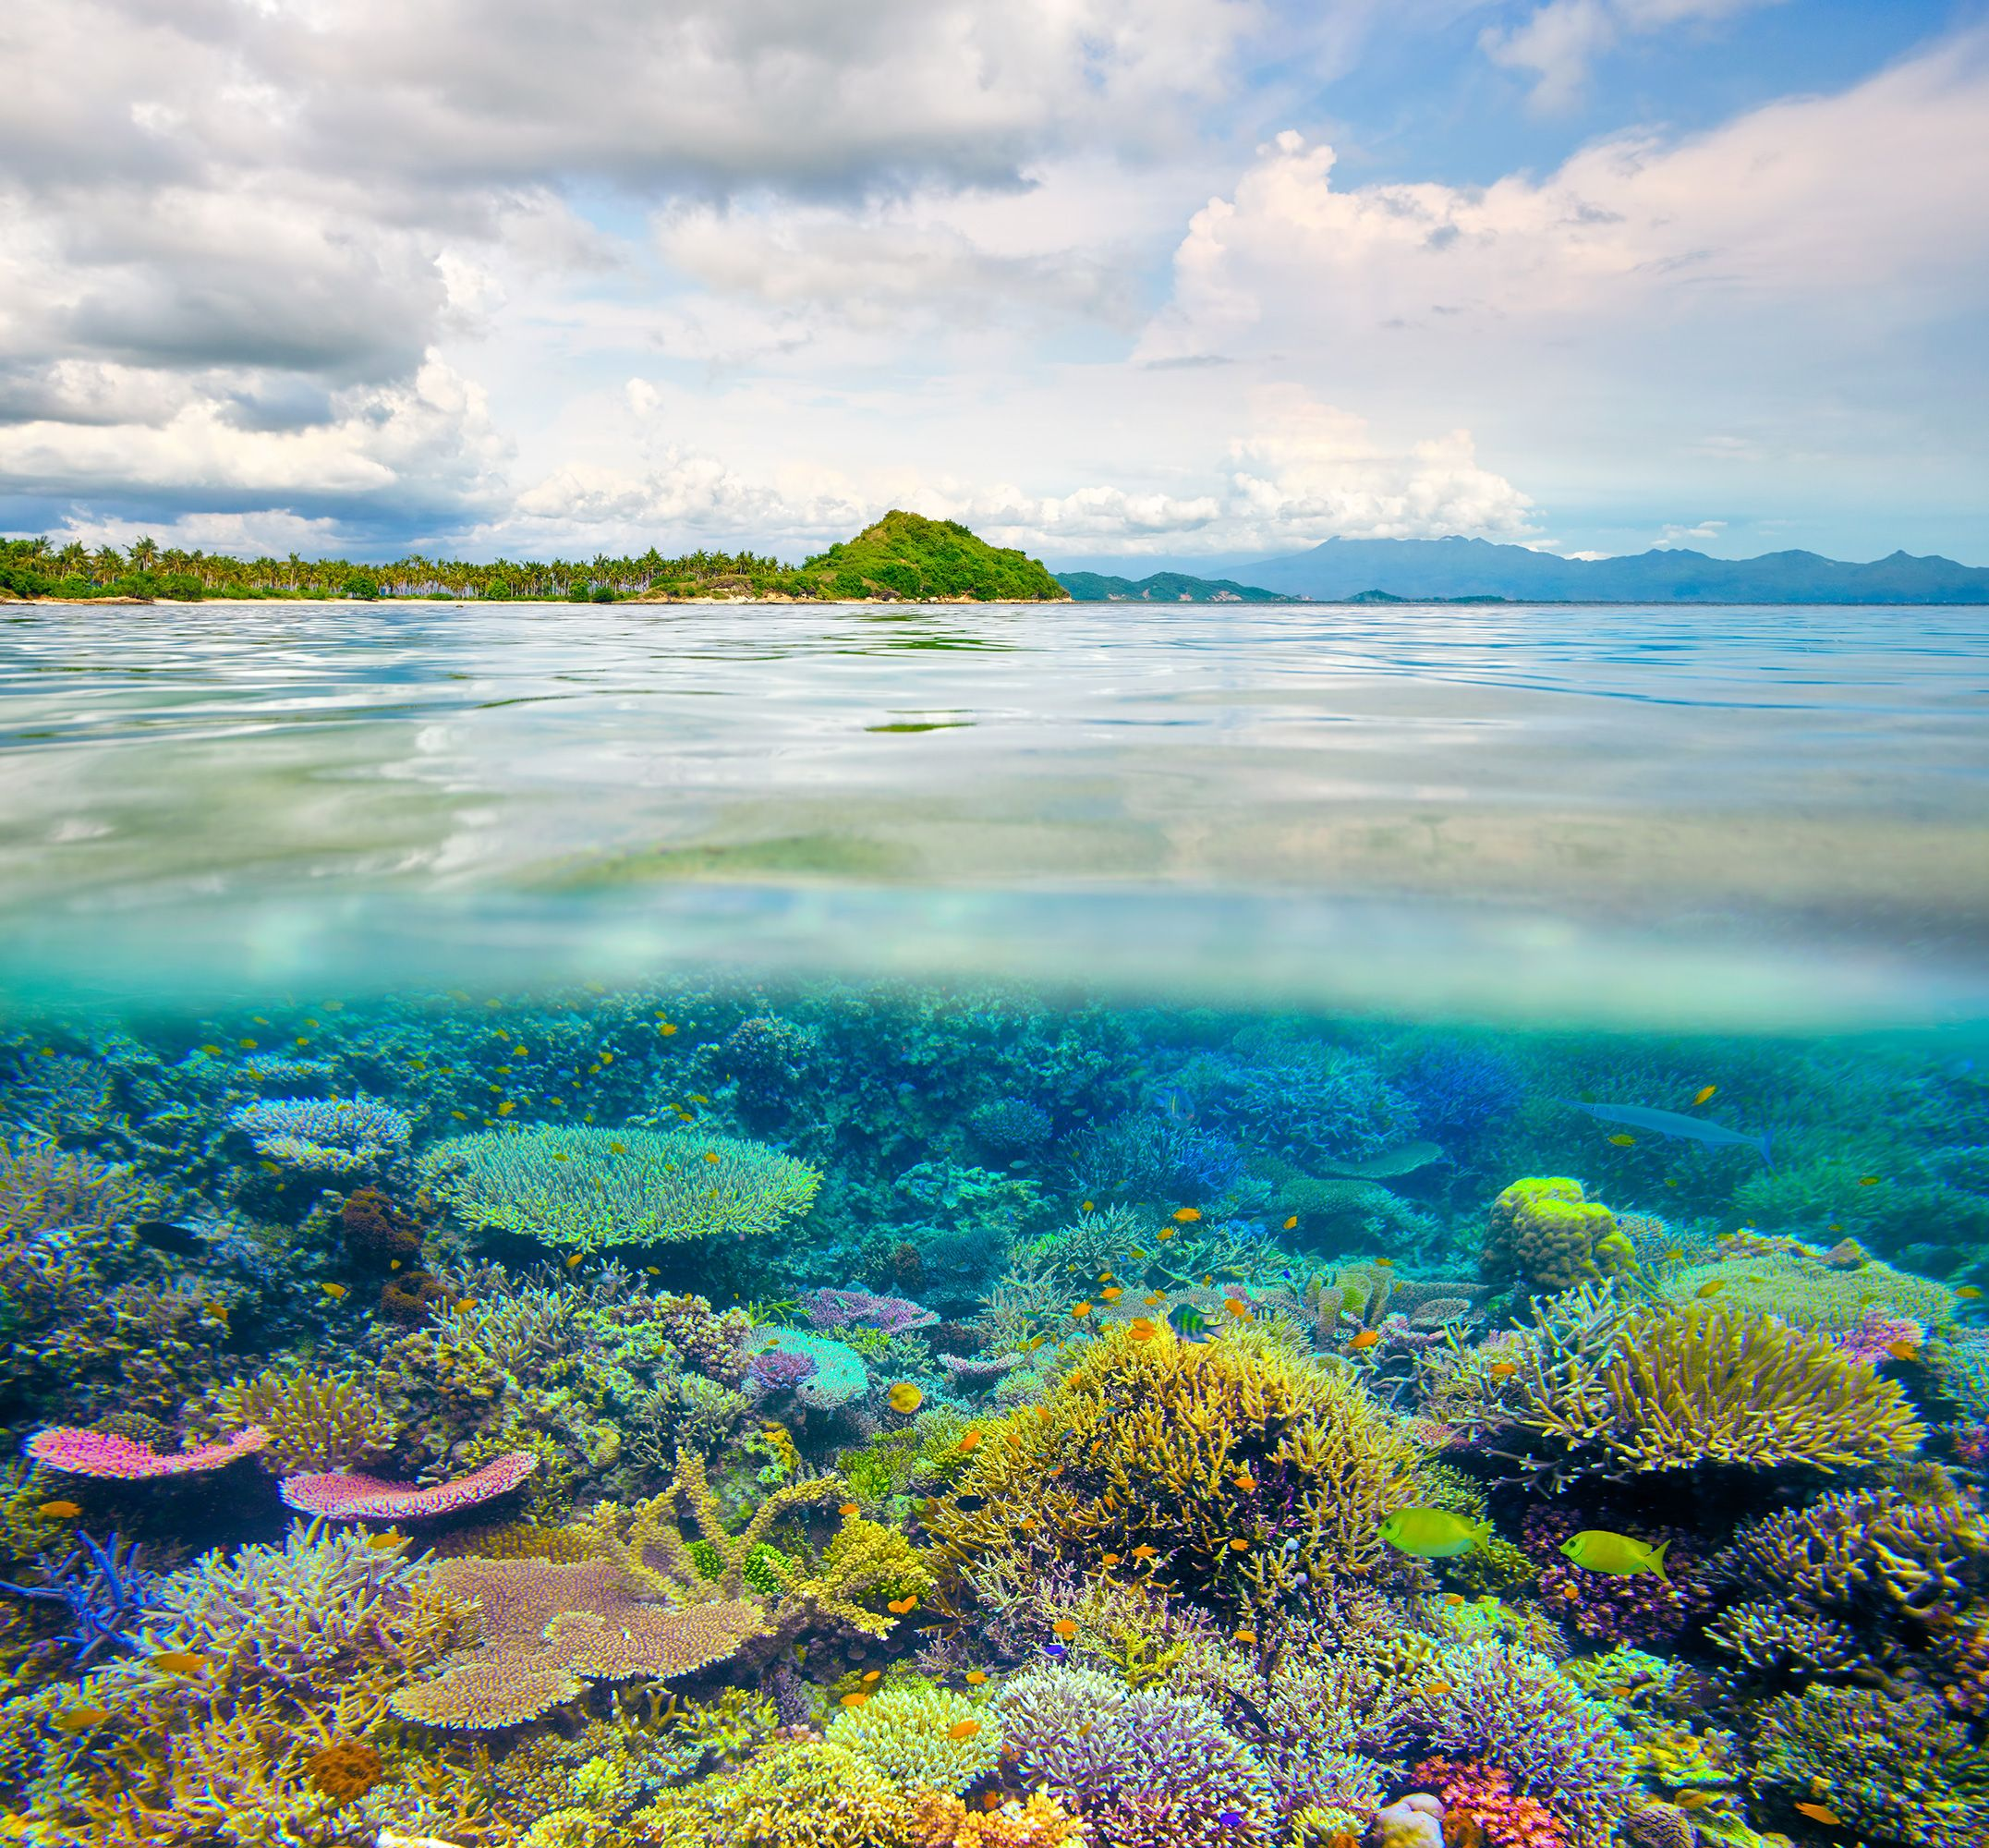 Scientists Have Discovered Pockets Of Coral Reefs Surviving In Warmer Waters With Images Wildlife Conservation Society Coral Reef Pictures